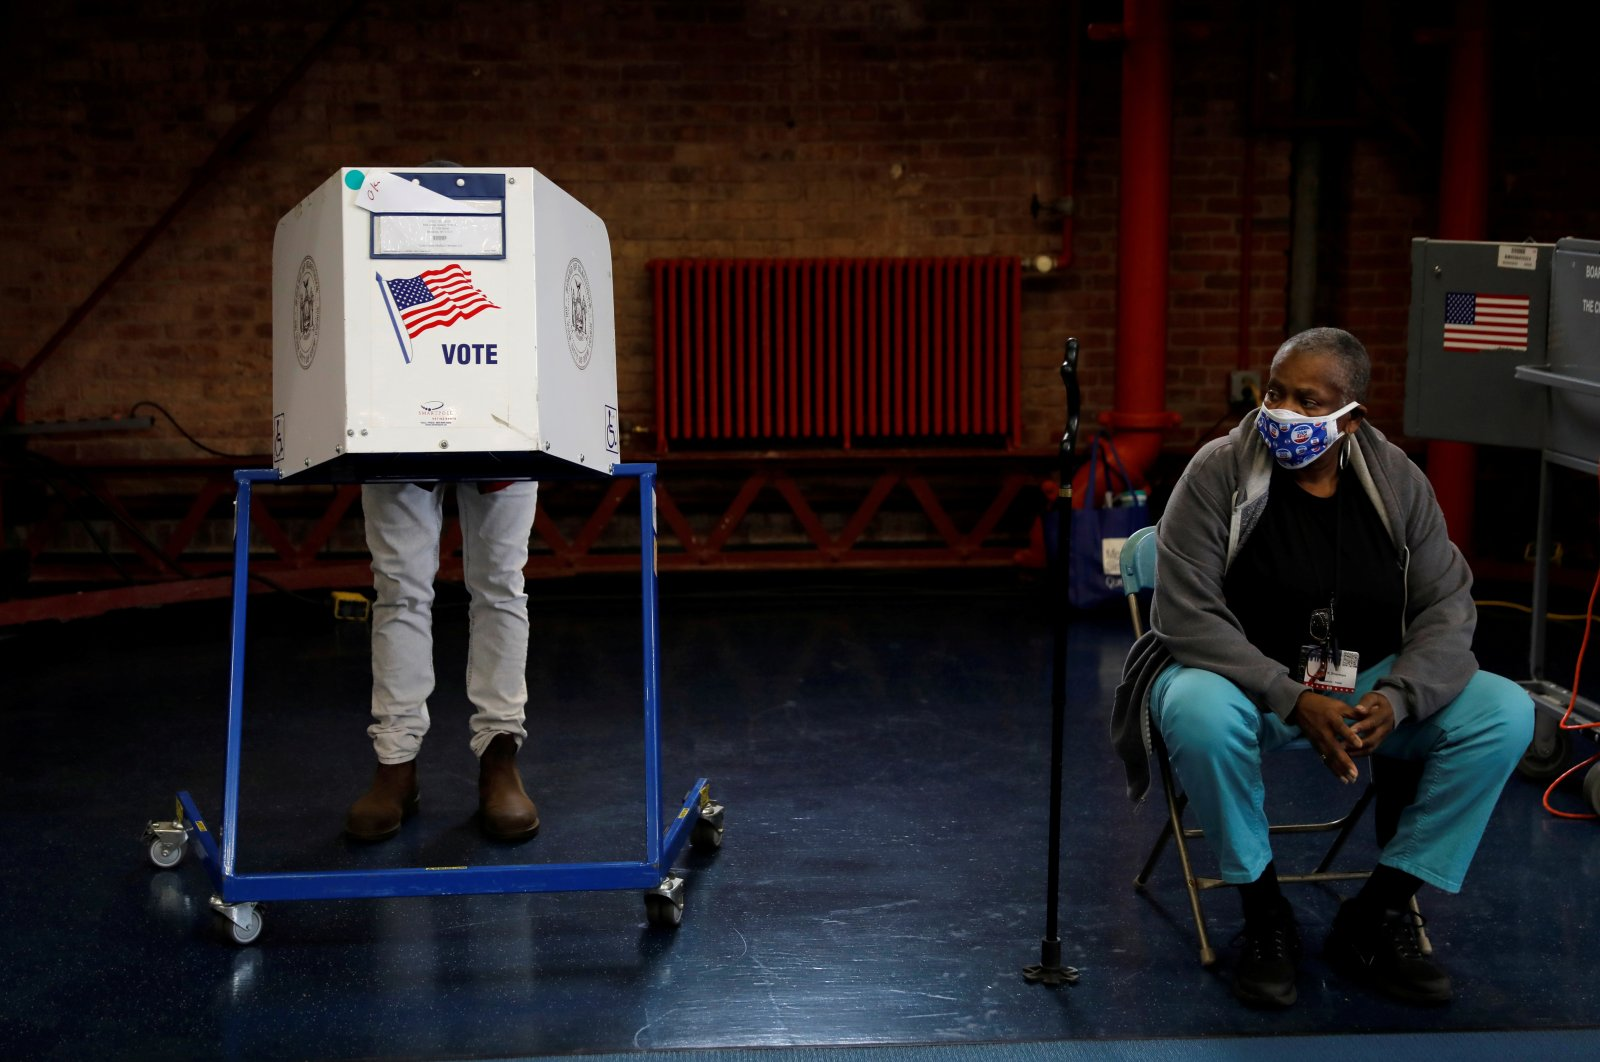 An election volunteer stands by as a voter fills out a ballot in a booth during early voting in the Brooklyn borough of New York City, Oct. 27, 2020. (Reuters Photo)